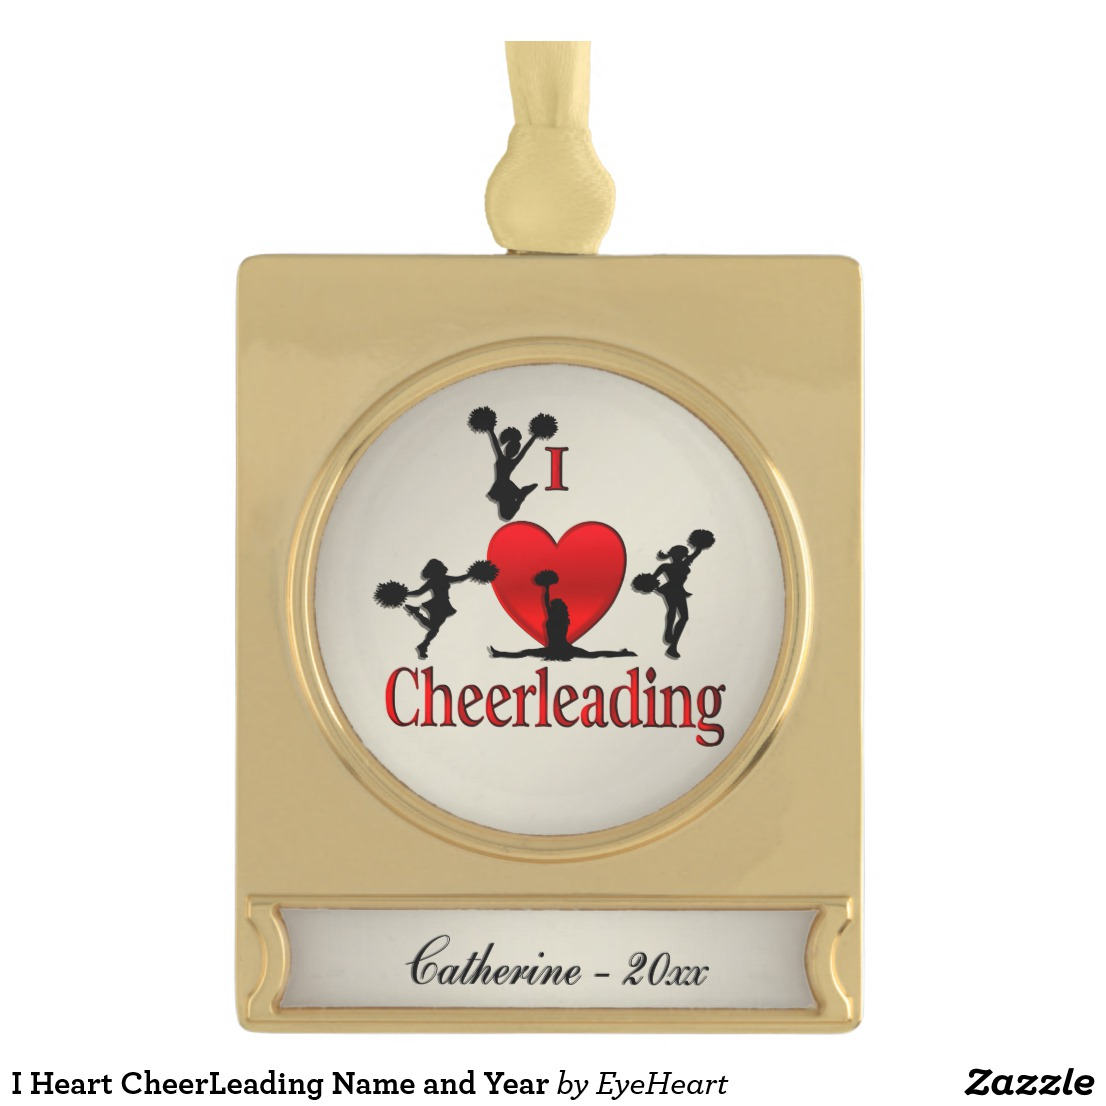 I Heart CheerLeading Name and Year Gold Plated Banner Ornament